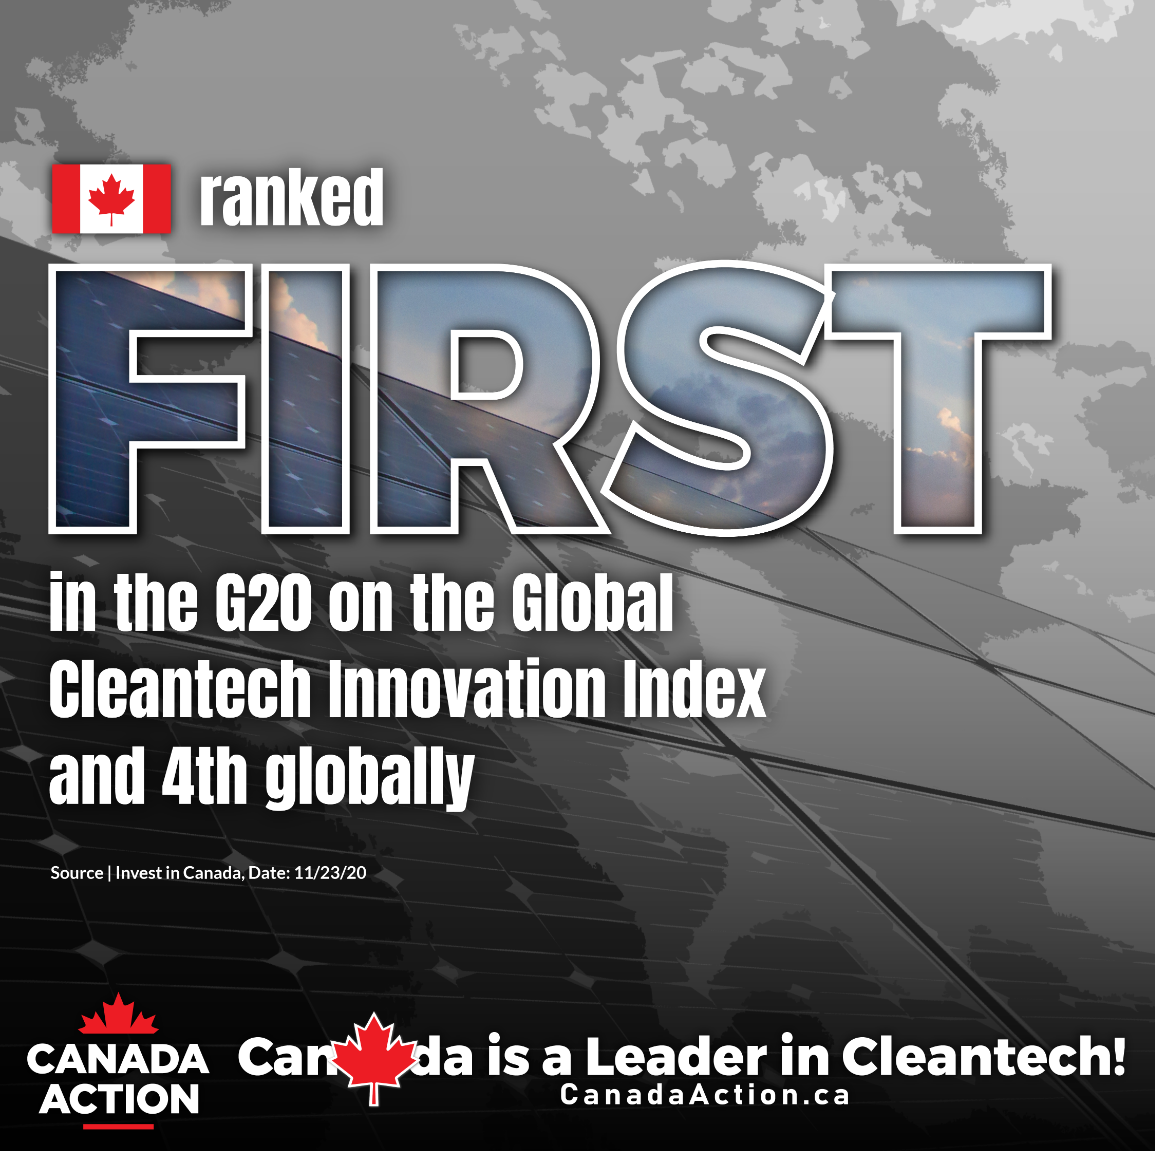 Canada Ranked 1st on the Global Cleantech Innovation Index of the G20, and 4th Globally